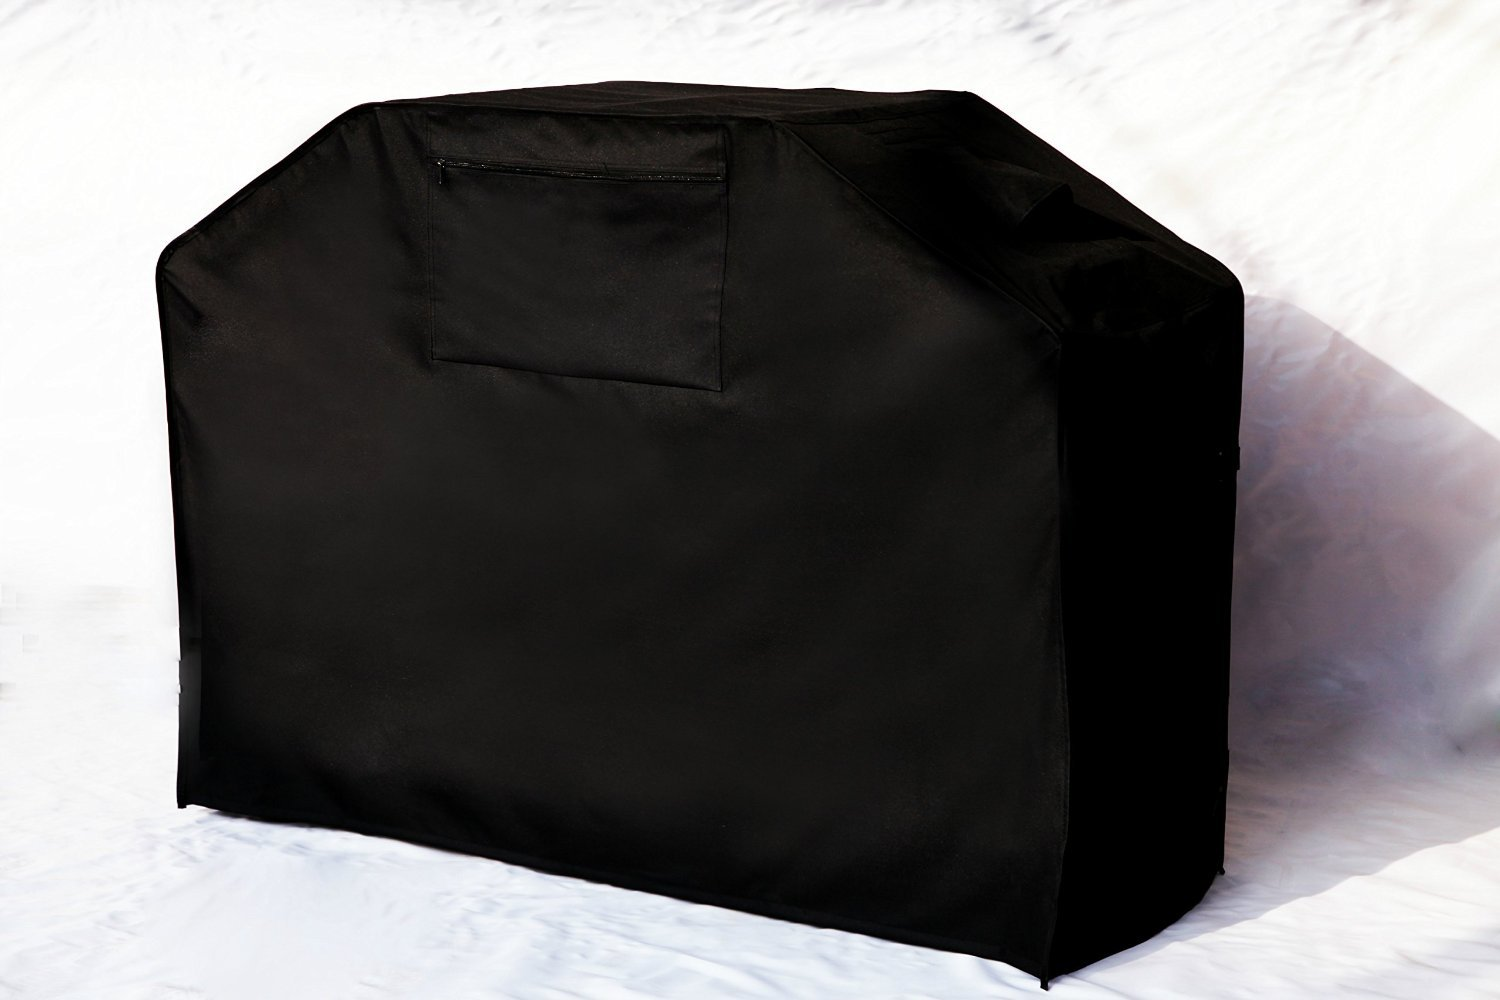 Garden Home Barbeque Grill Cover, Padded Handles, Helpful Air Vents, 58'' L, Black